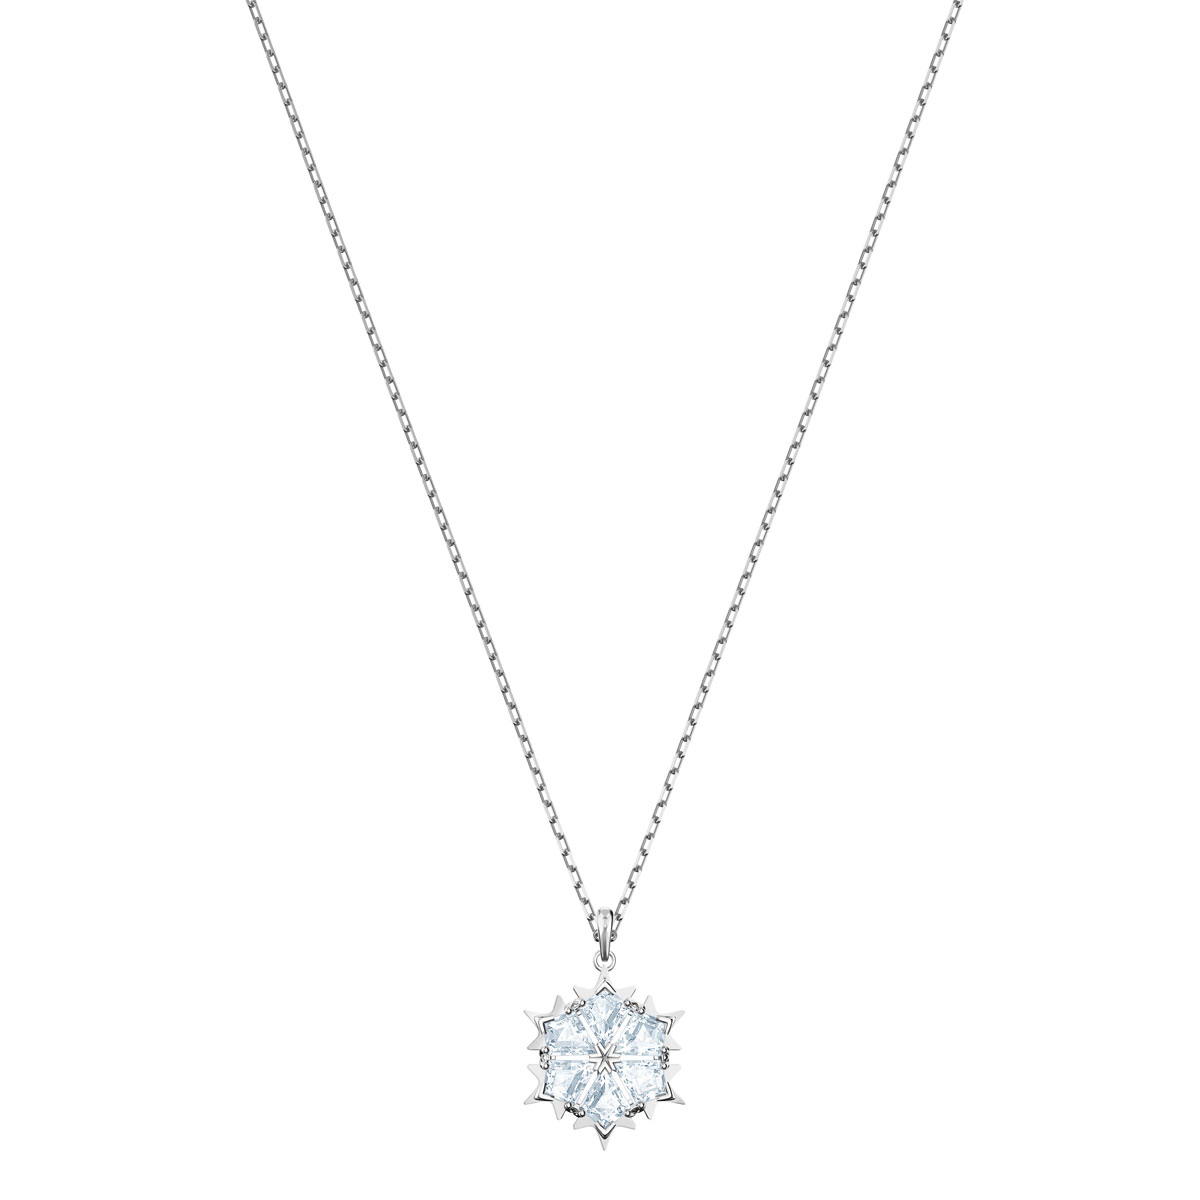 Swarovski Magic Snowflake Pendant, White, Rhodium